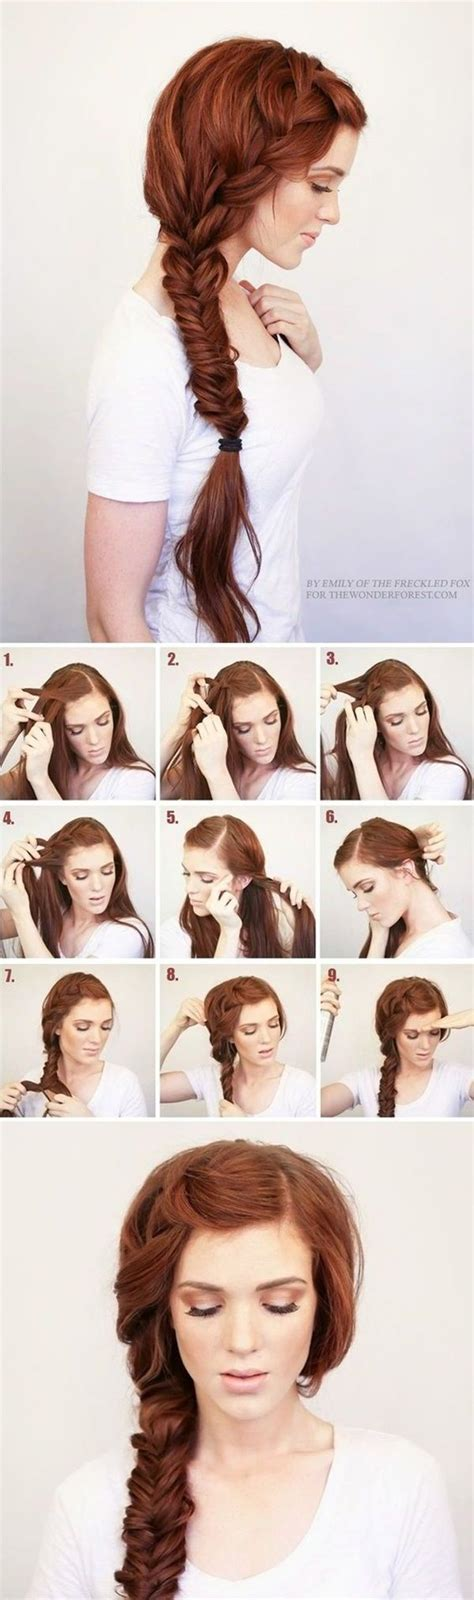 25 best ideas about easy hairstyles for school on school hairstyles easy school